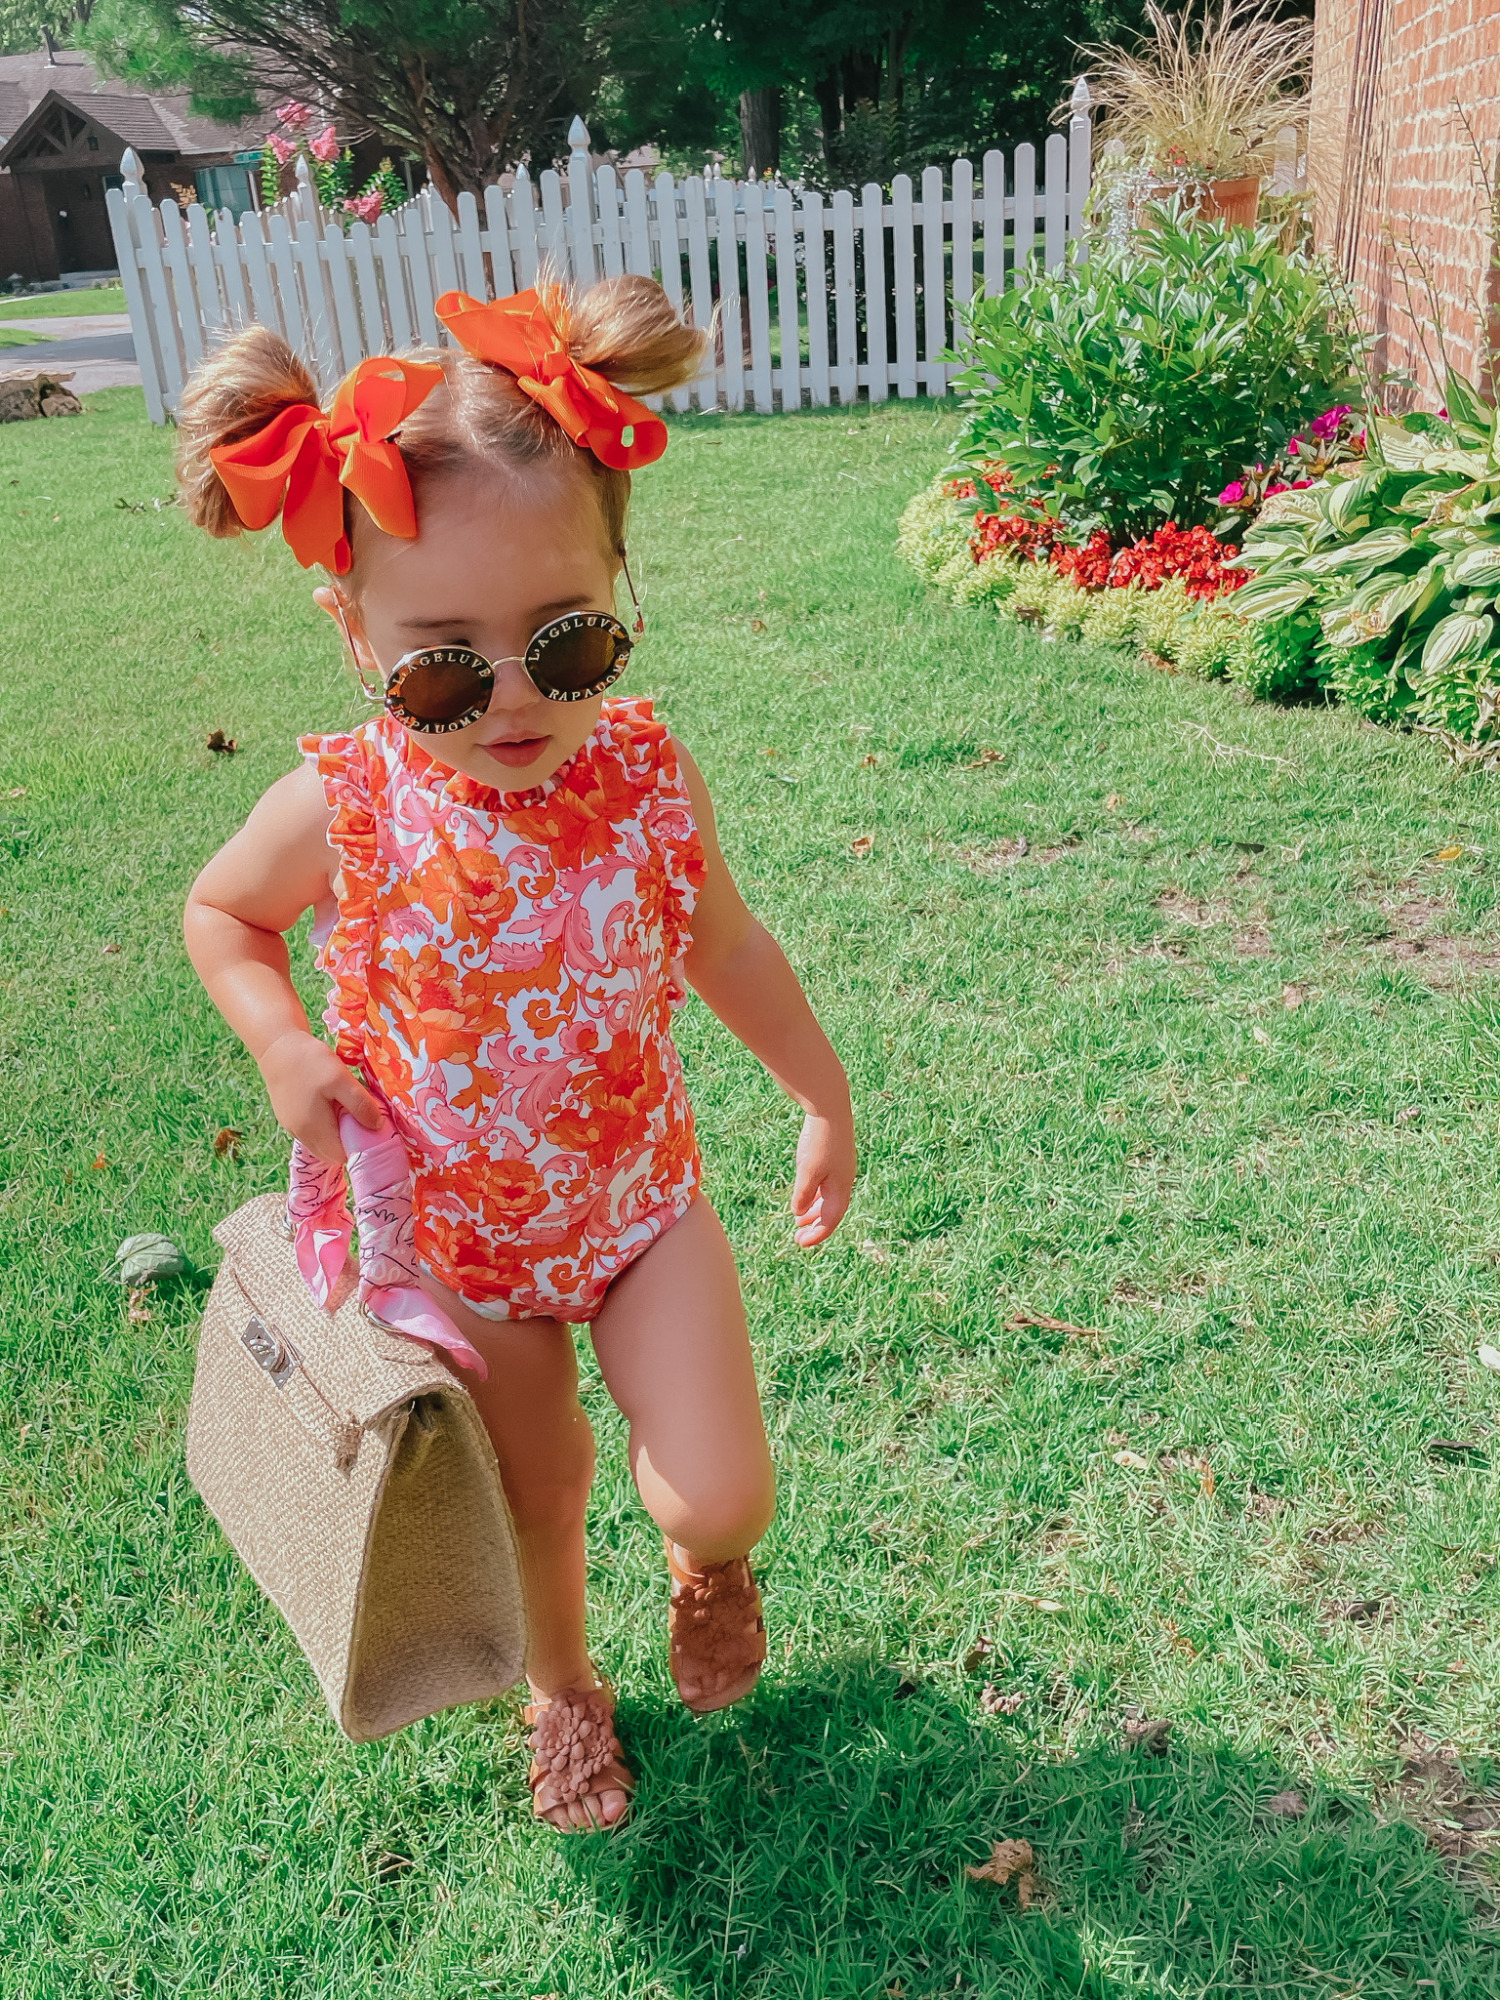 Sophia Gemma, Toddler Swimsuit, Toddler Bows, Swimwear for little girls, Kids Sunglasses, Baby Girl Summer Outfit Ideas   Instagram Recap by popular US life and style blog, The Sweetest Thing: image of a little girl wearing an orange and pink floral print Janie and Jack swimsuit, Zara sandals, orange hair bows, and holding a woven handbag.